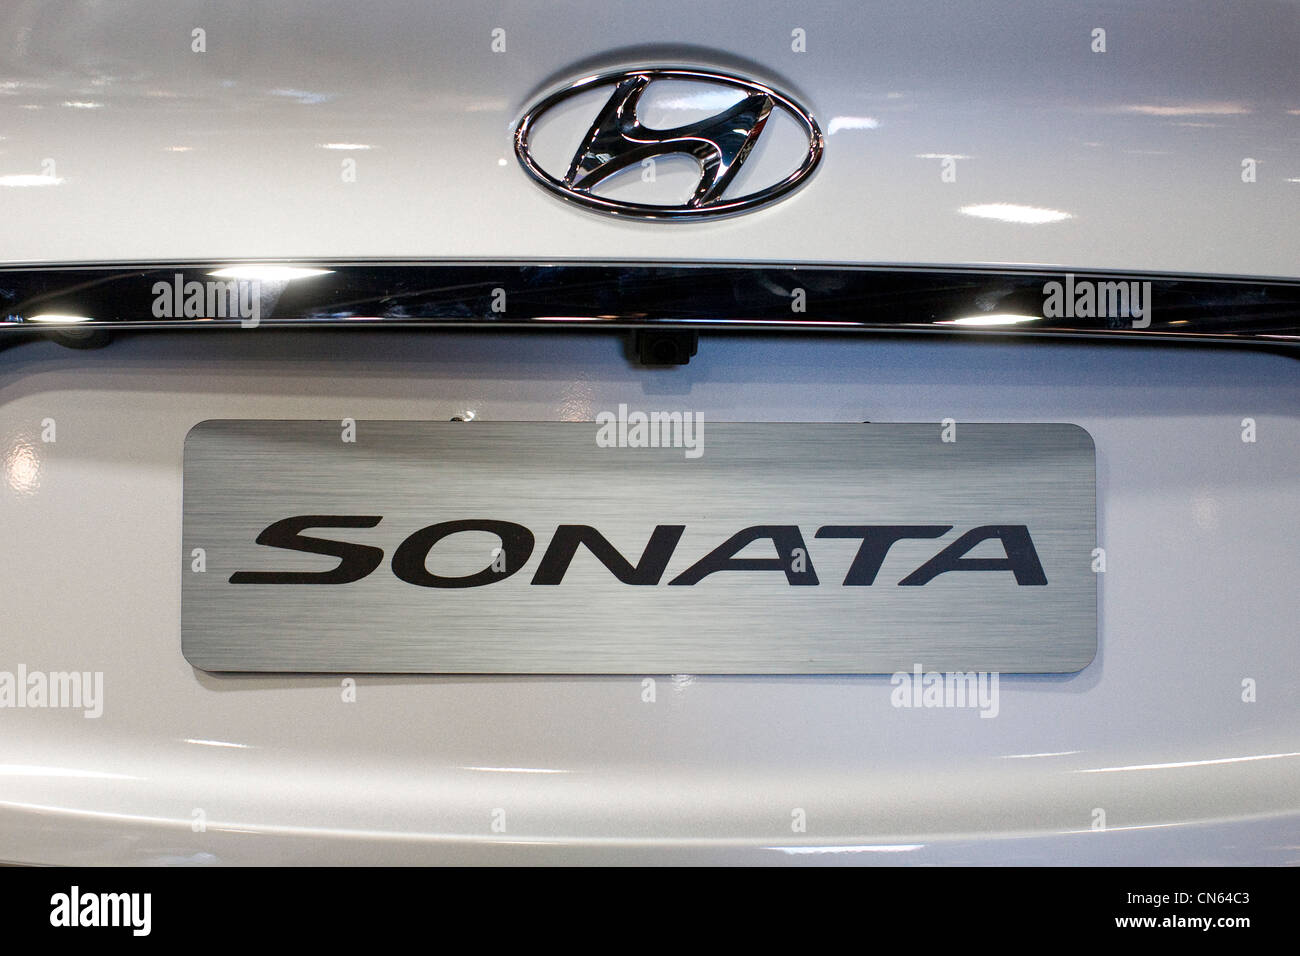 Hyundai Car Badge Stock Photos Hyundai Car Badge Stock Images Alamy